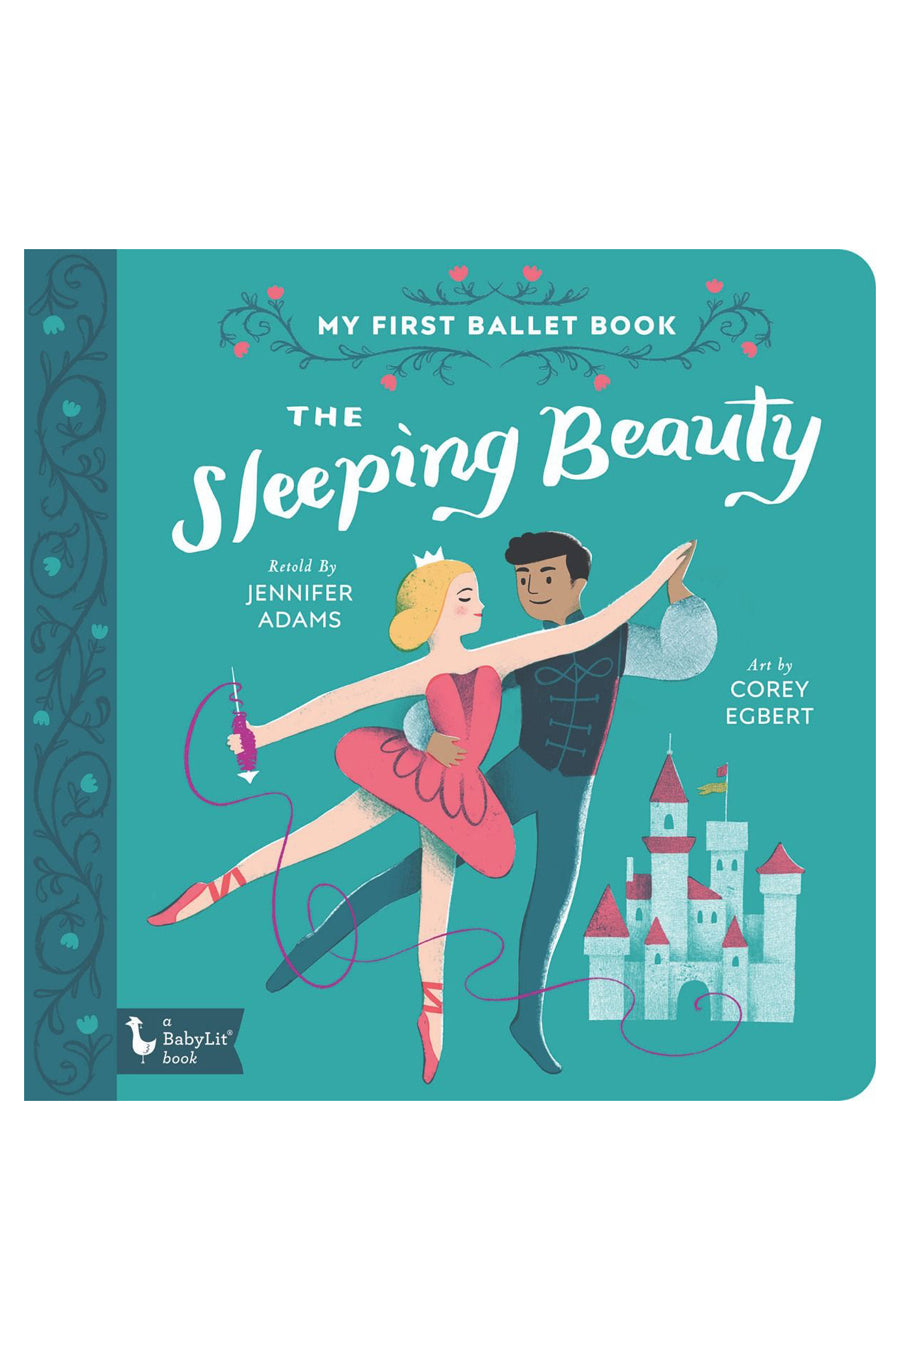 My First Ballet Book: The Sleeping Beauty